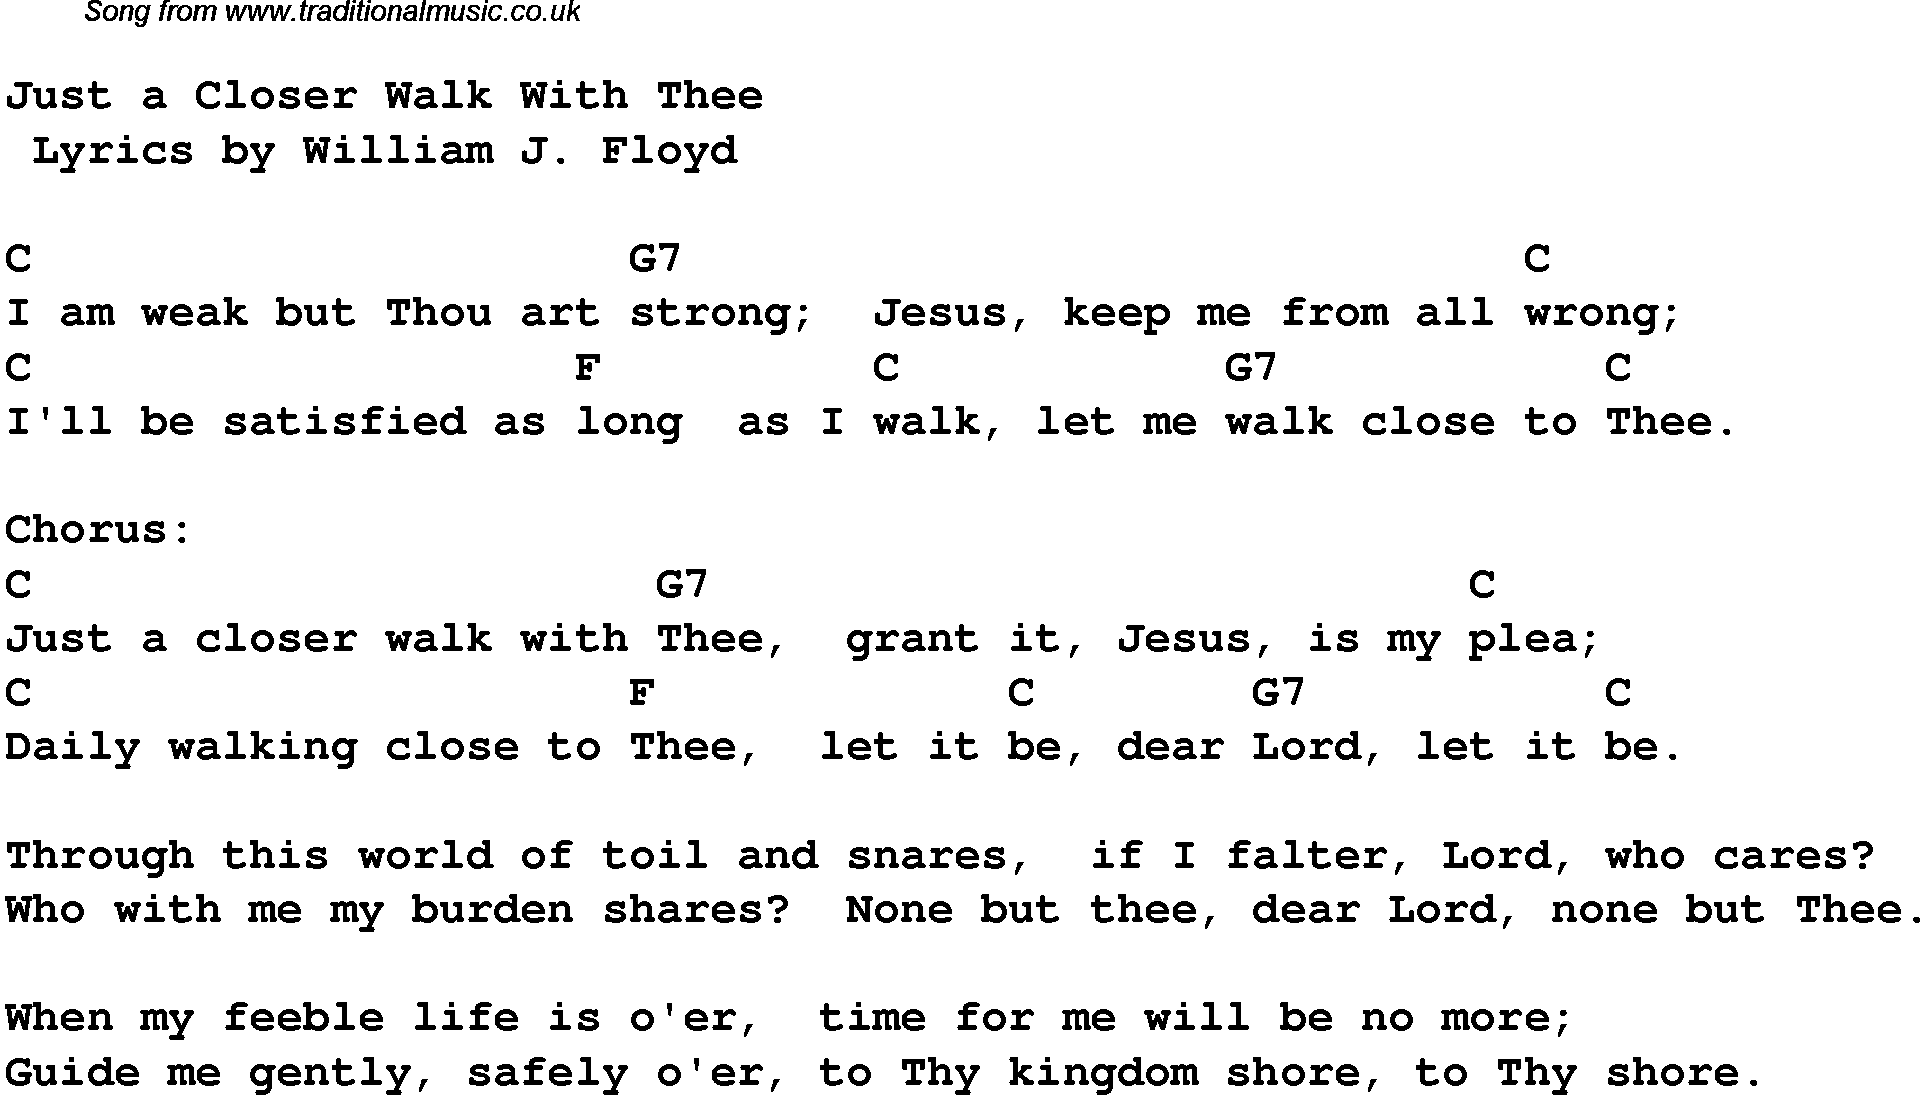 Guitar Chords To Walk Closer With Thee